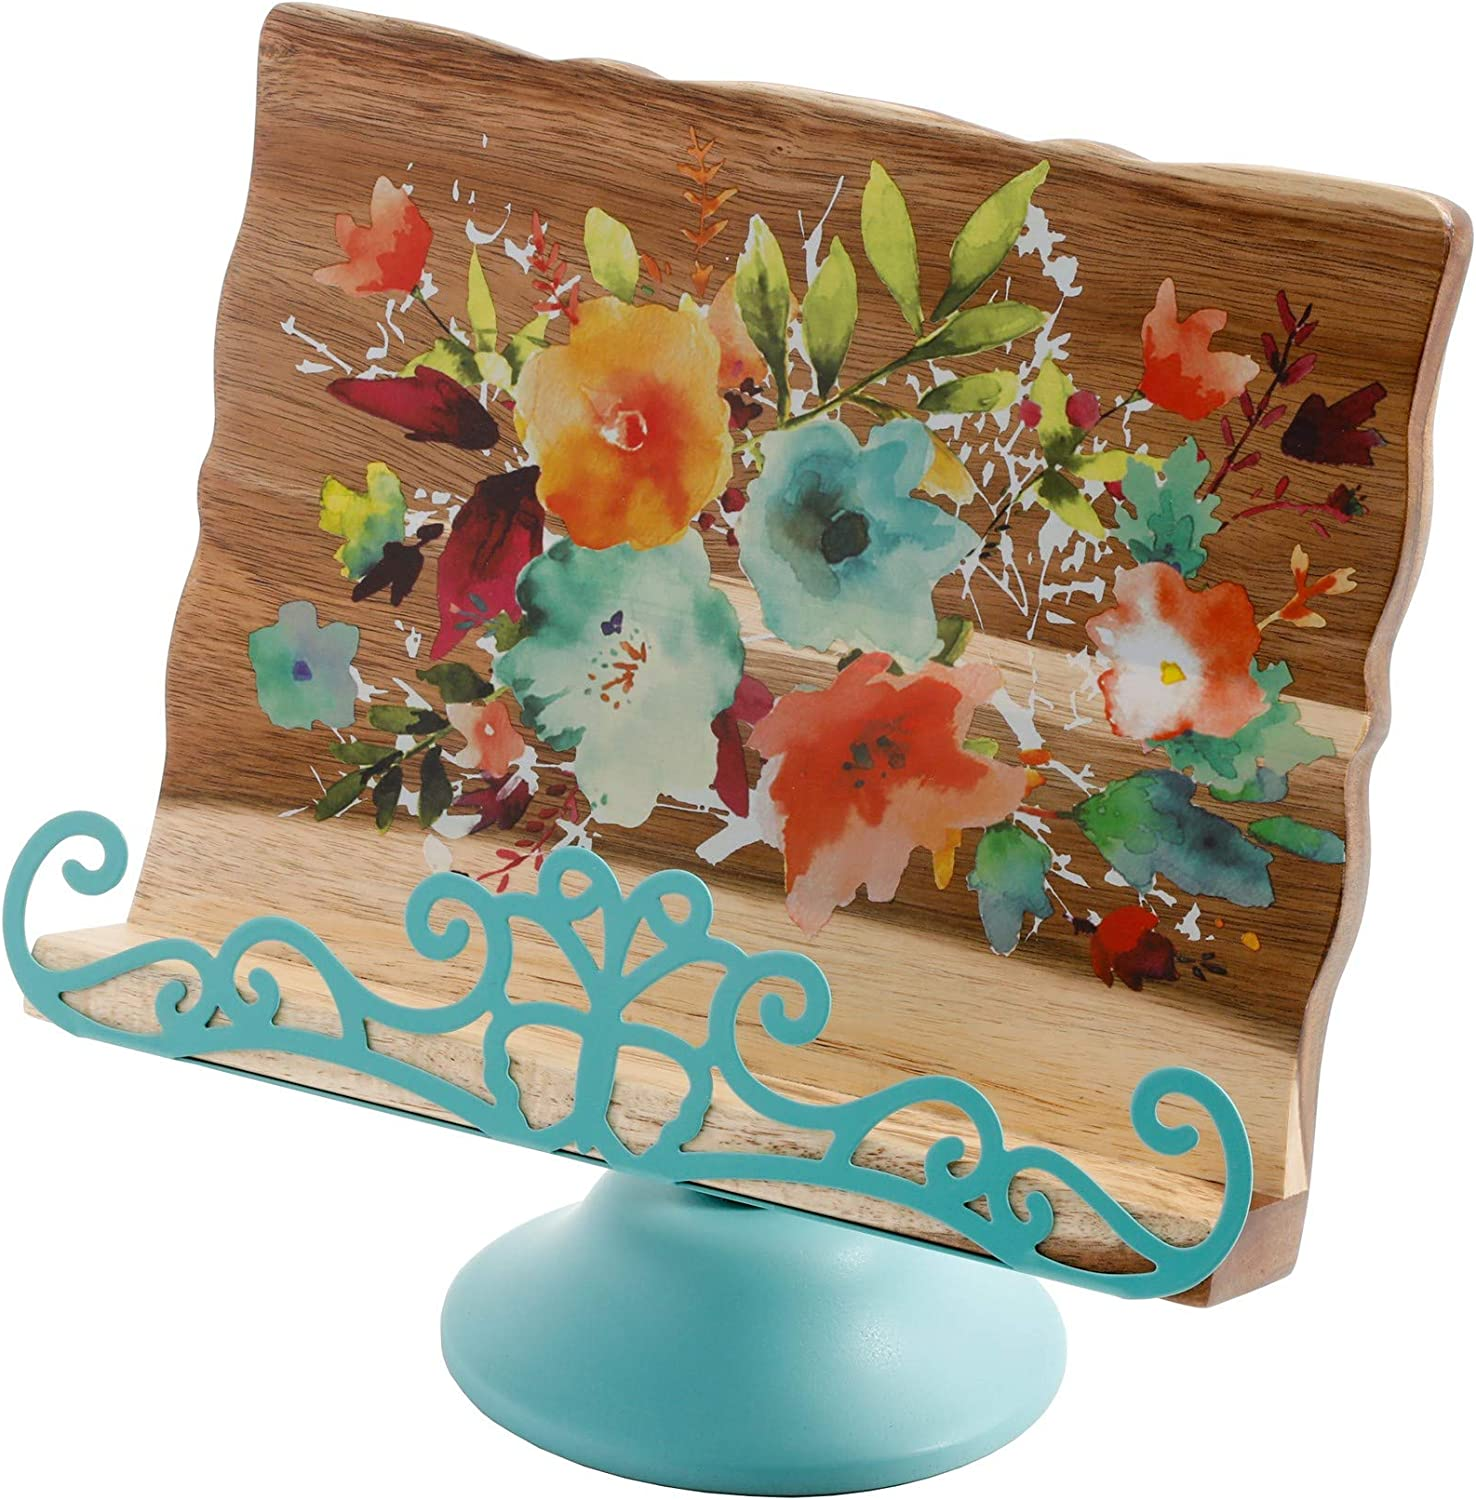 The Pioneer Woman Blossom Jubilee 6.2-Inch Recipe Box With Knob Rustic Floral